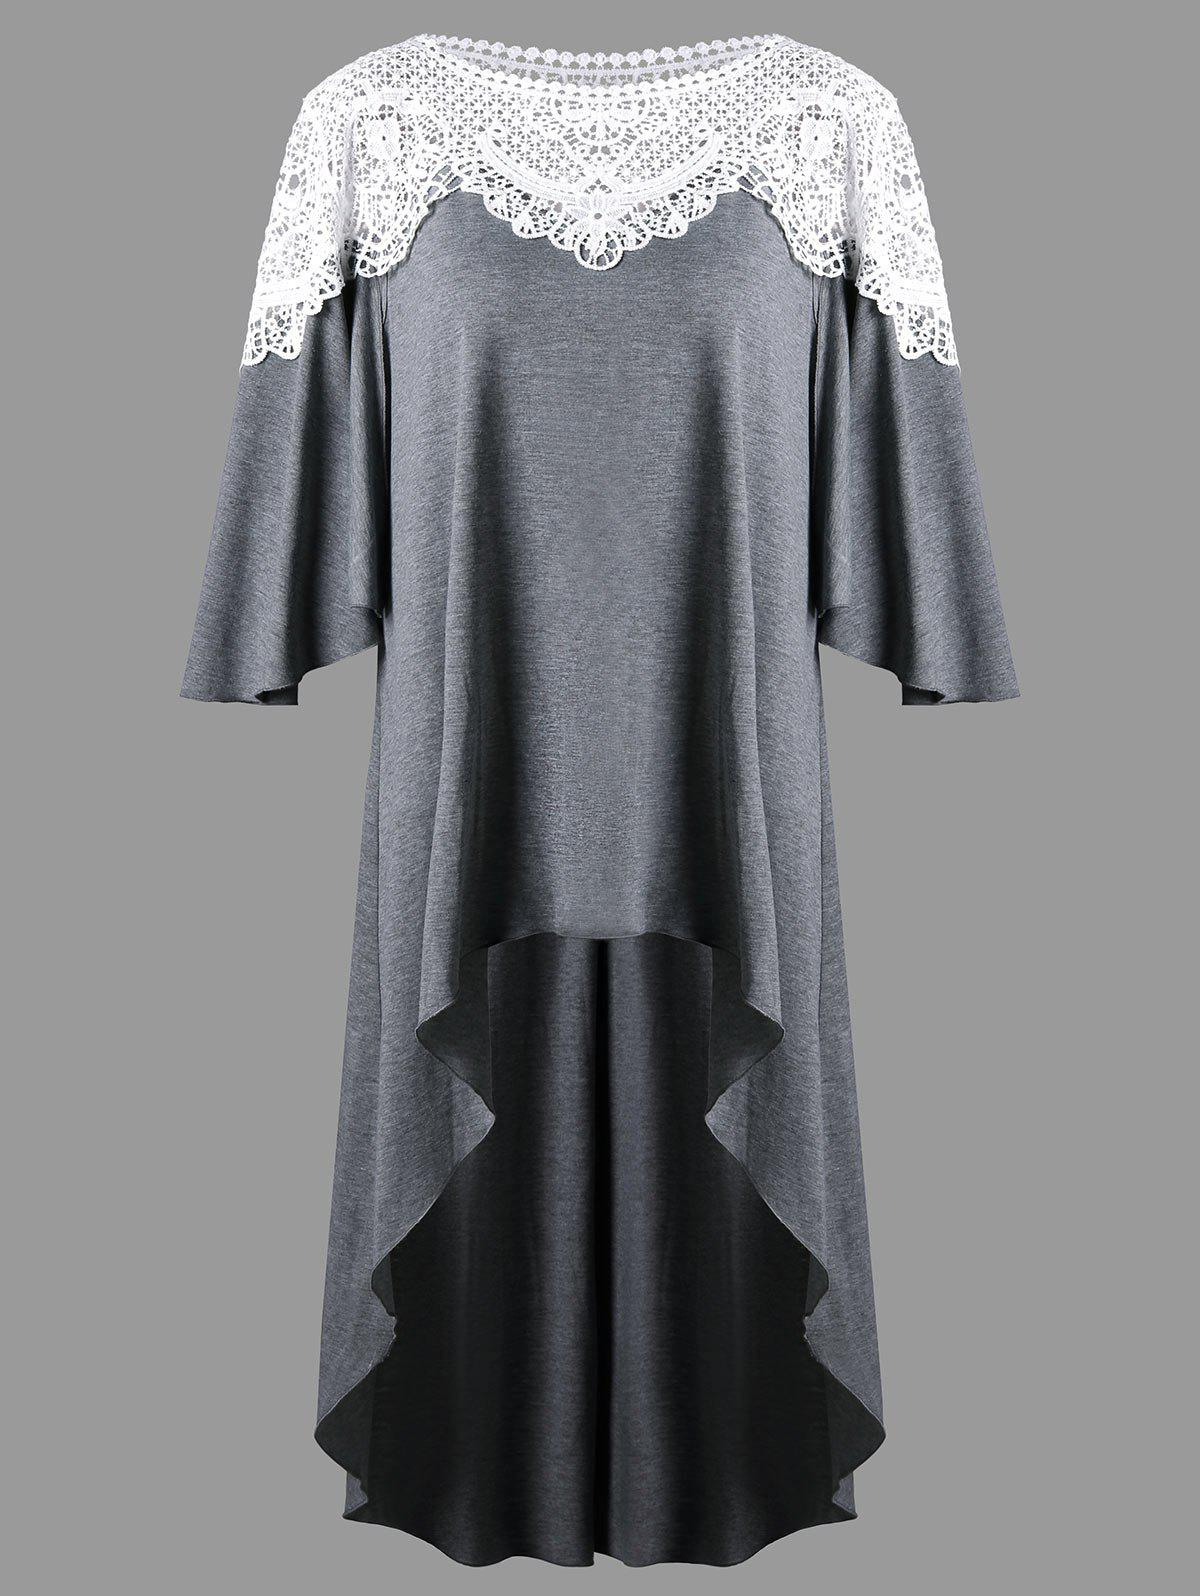 Crochet Insert Plus Size High Low TopWOMEN<br><br>Size: 2XL; Color: GRAY; Material: Polyester,Spandex; Shirt Length: Long; Sleeve Length: Half; Collar: Round Neck; Style: Fashion; Season: Fall,Spring; Pattern Type: Others; Weight: 0.4220kg; Package Contents: 1 x Top;